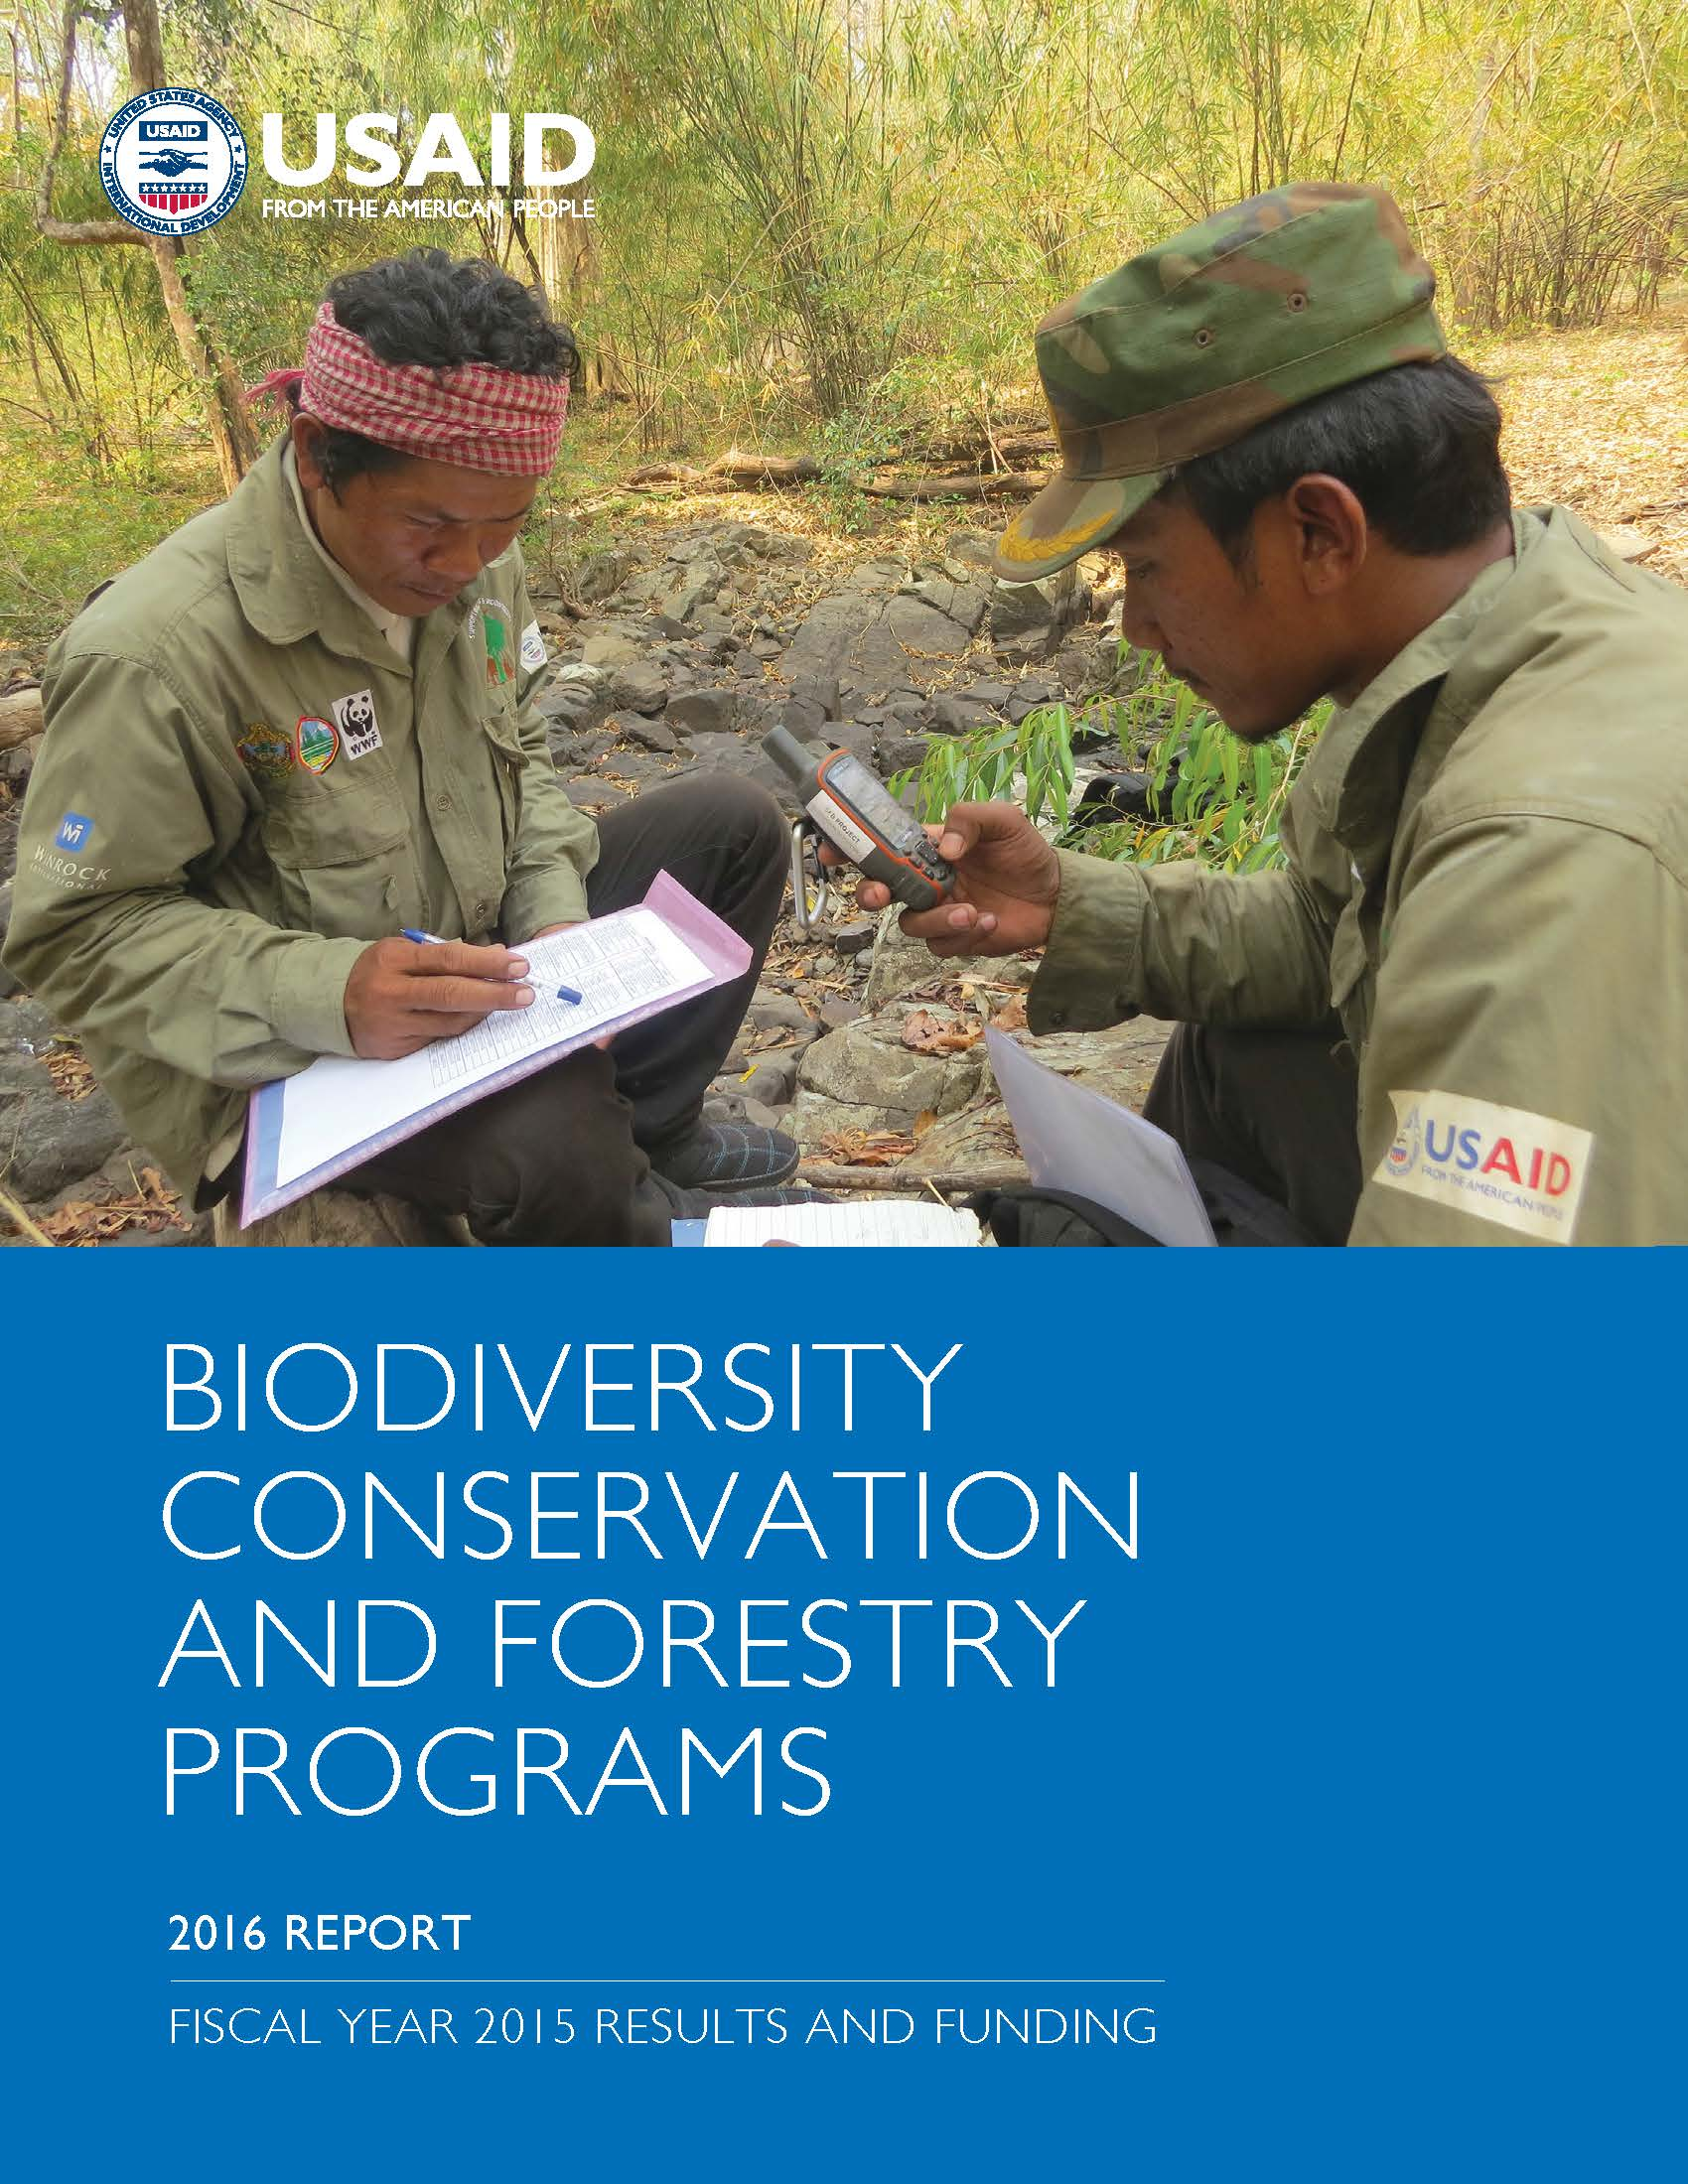 USAID'S BIODIVERSITY CONSERVATION AND FORESTRY PROGRAMS, 2016 REPORT